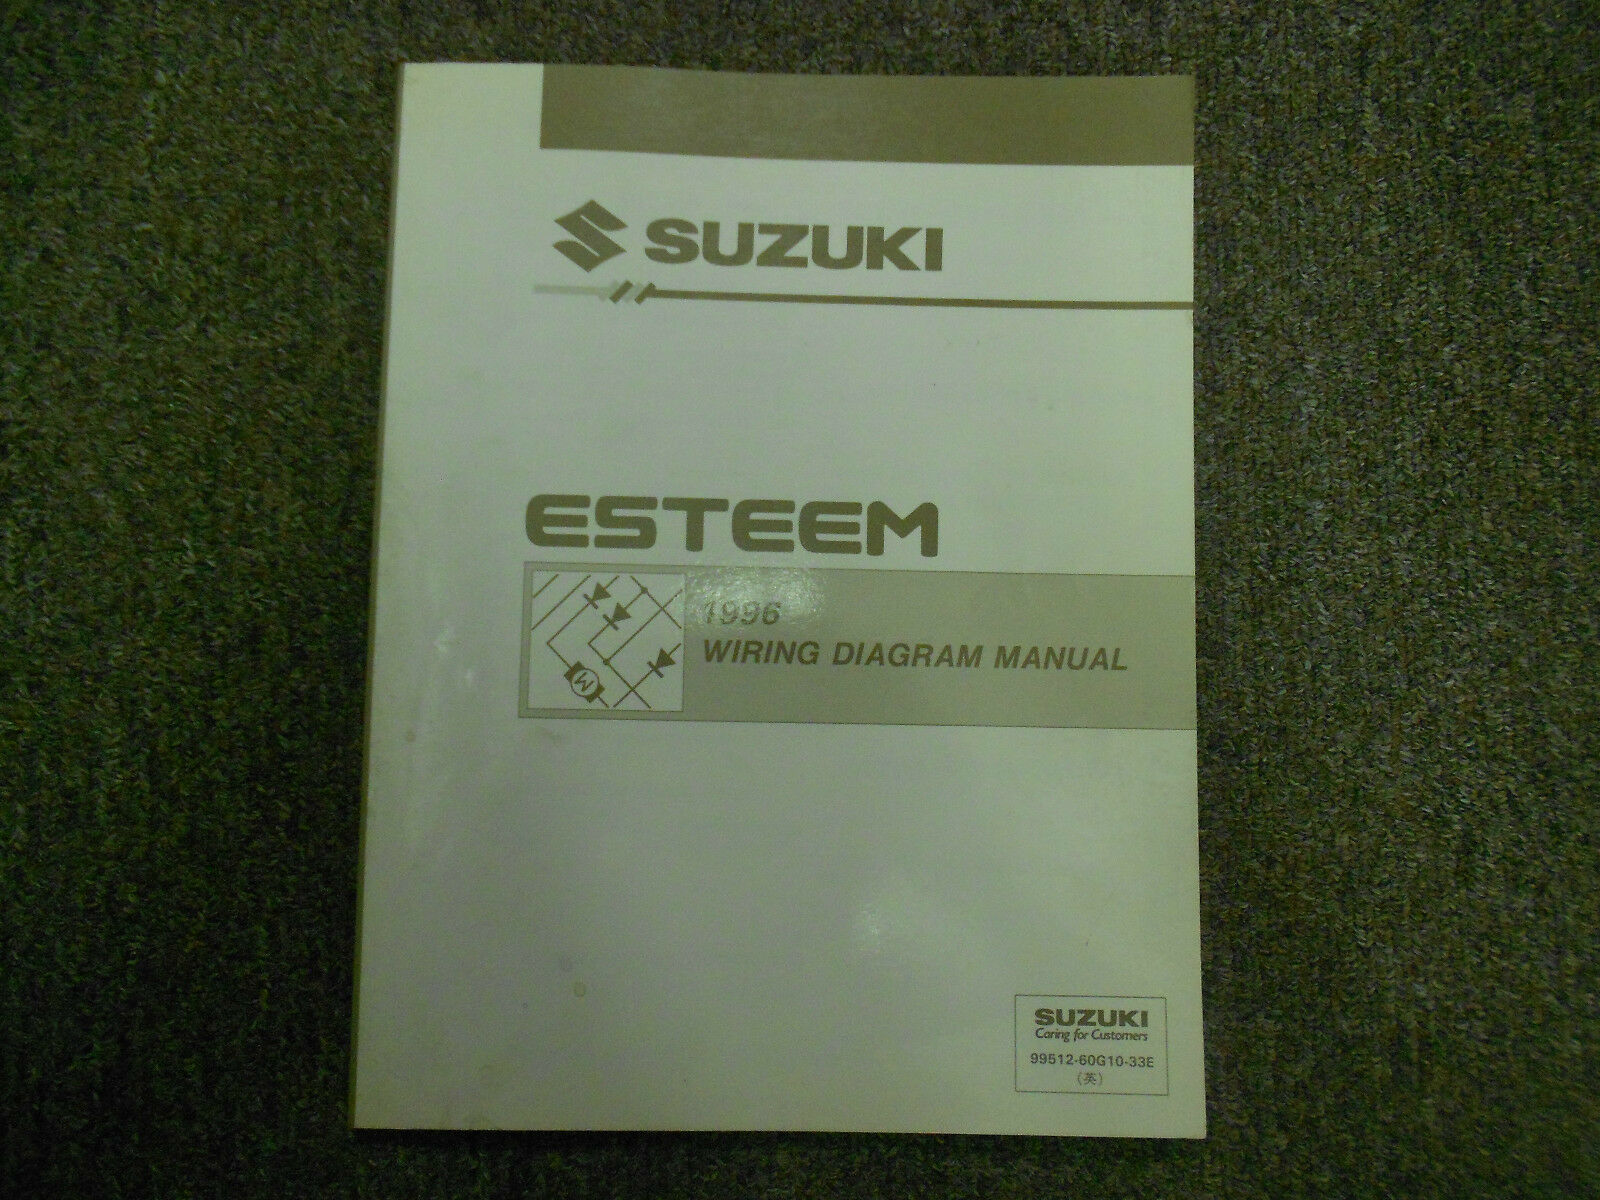 1996 Suzuki Esteem Wiring Diagram Shop Manual FACTORY OEM BOOK 96  DEALERSHIP 1 of 12Only 1 available ...